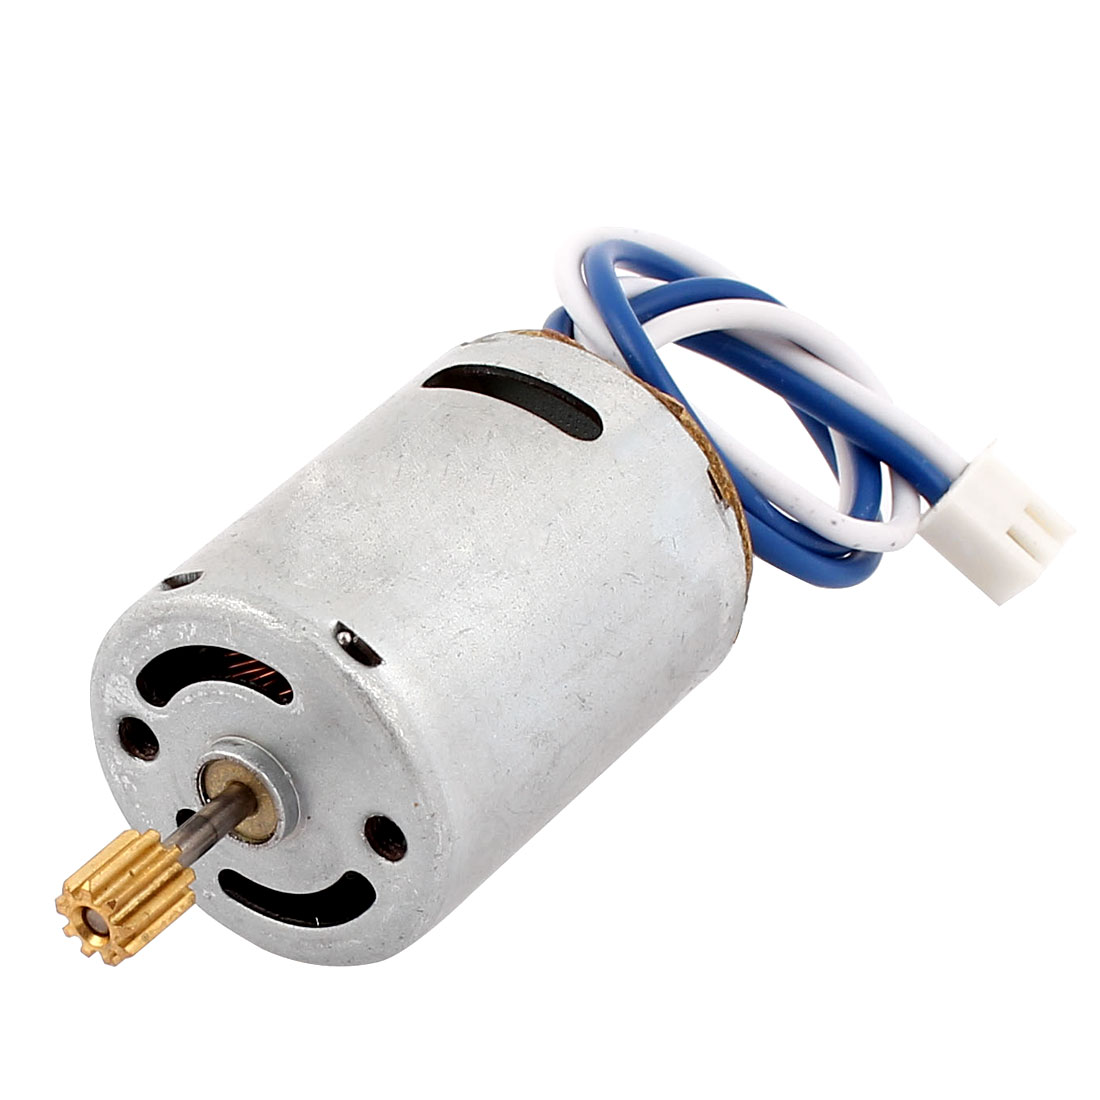 DC7.4V 31800RPM 2mm Shaft Dia Electric Mini Motor for Double Horse 9101 RC Airplane